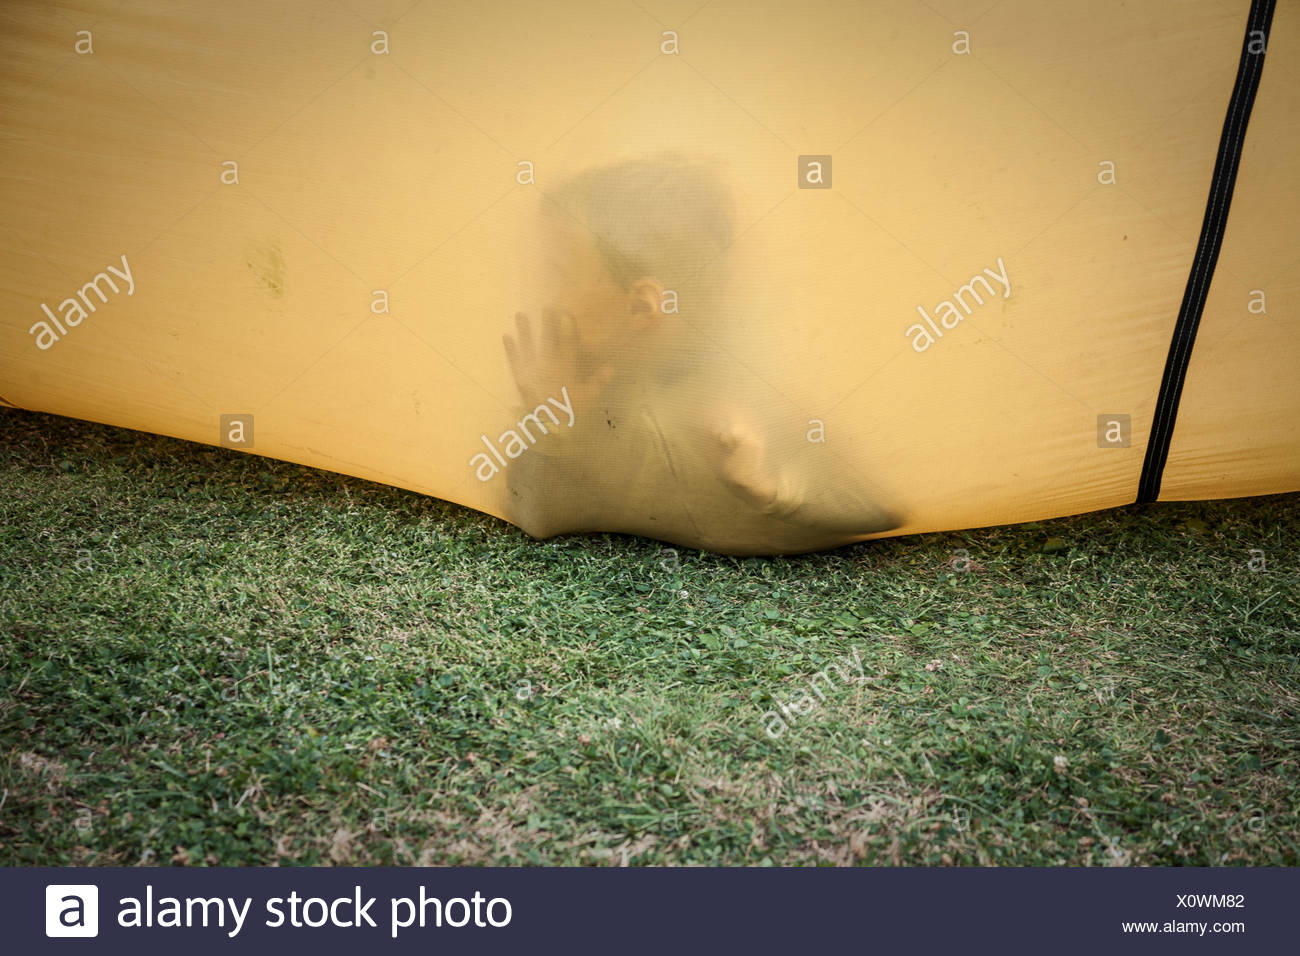 Young boy inside a hot air balloon. - Stock Image